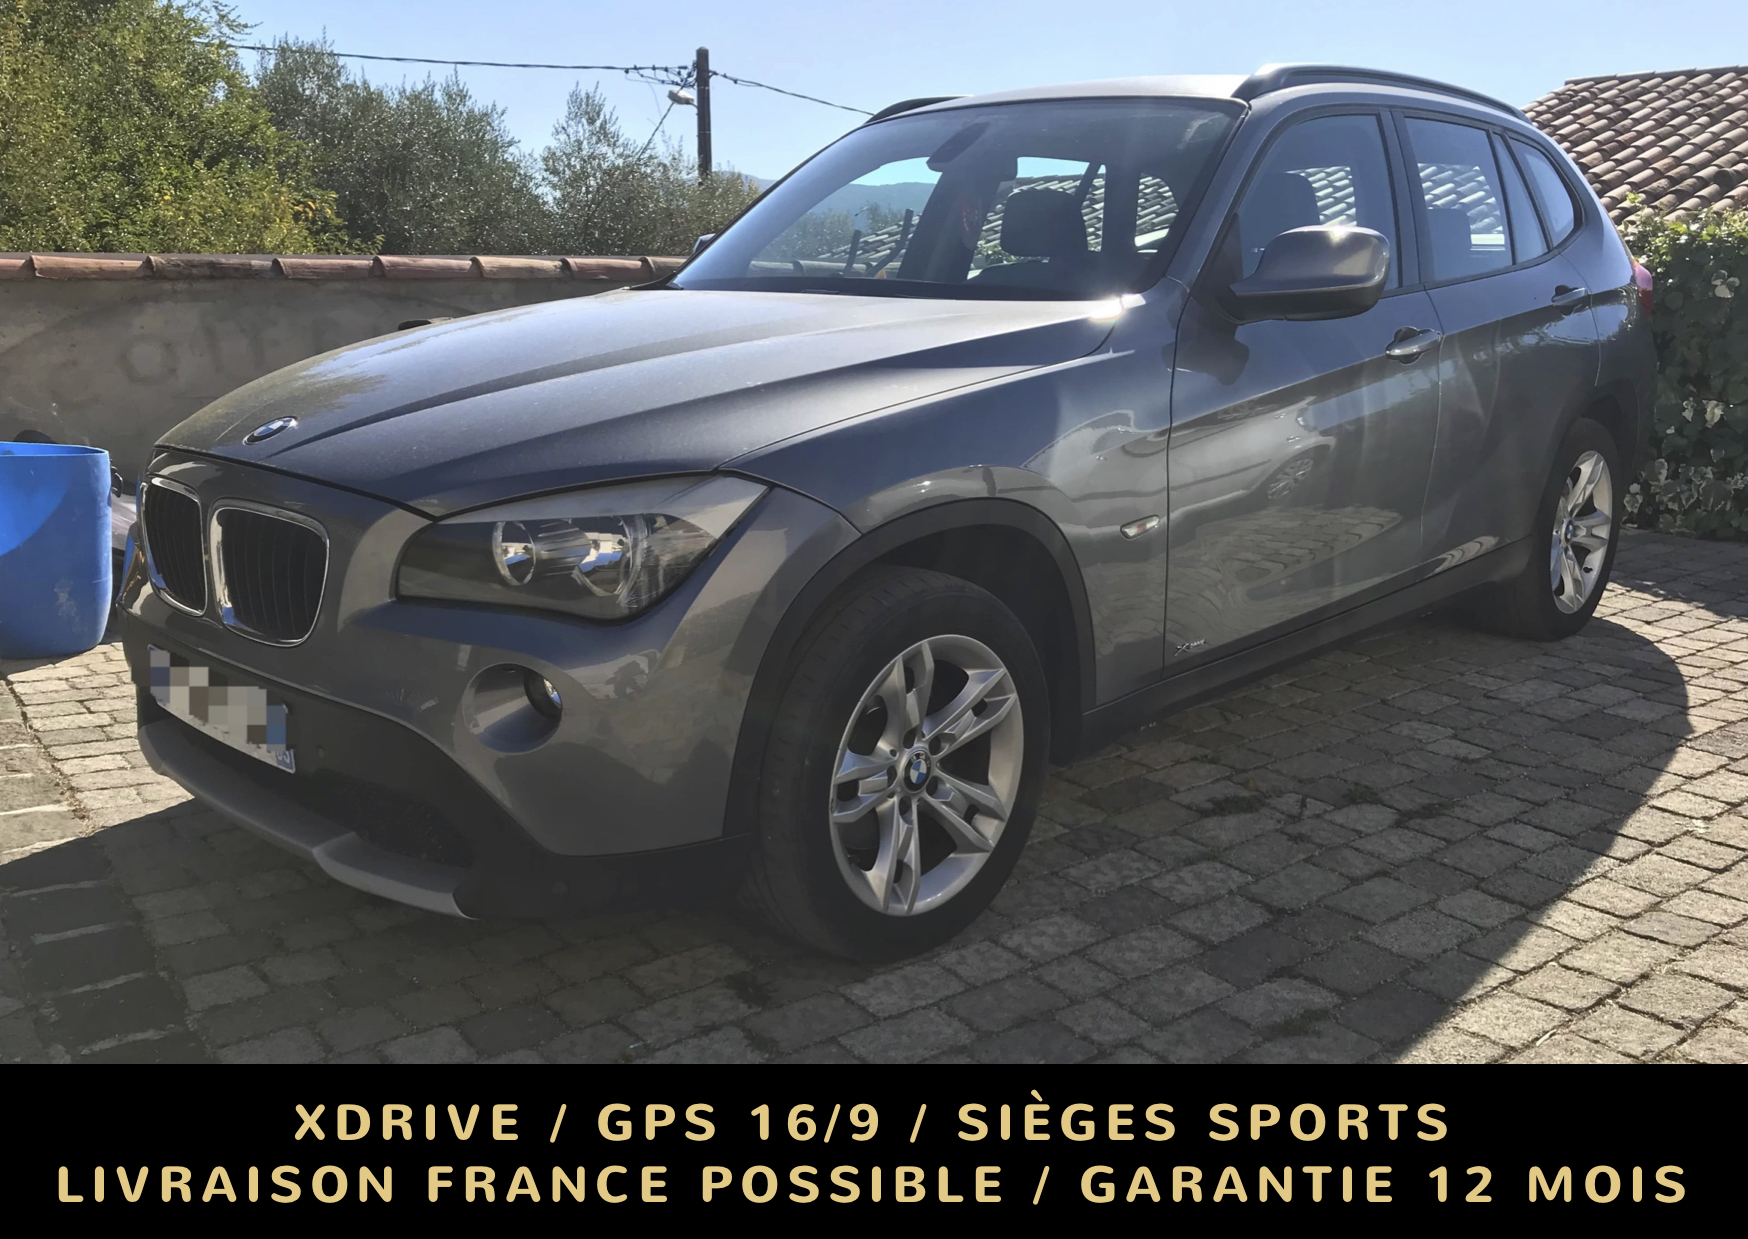 voiture bmw x1 voiture bmw x1 bmw x1 occasion prix 17. Black Bedroom Furniture Sets. Home Design Ideas